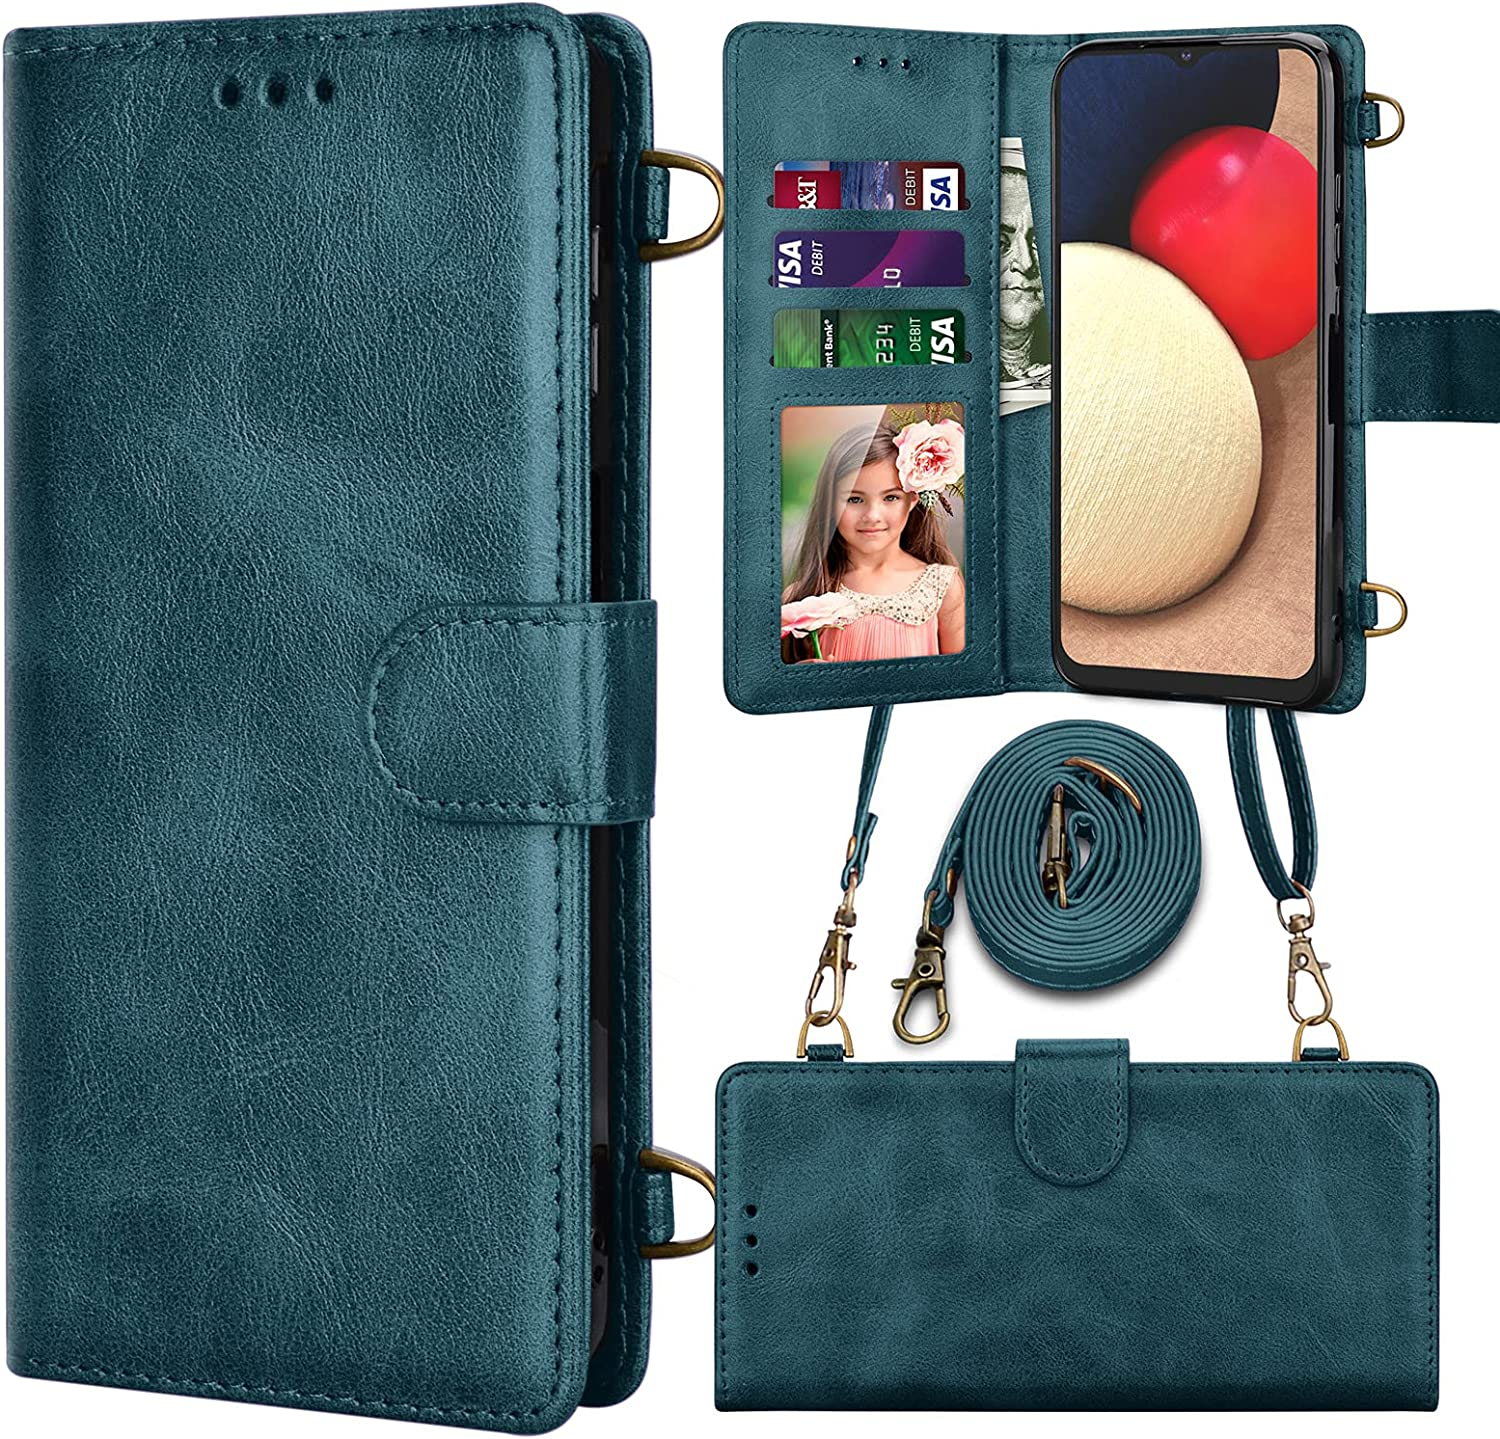 Njjex Wallet Case for Samsung Galaxy S21 Plus 5G, for Galaxy S21 Plus Case, RFID PU Leather Card Slots Holder Folio Flip Kickstand [Magnetic Detachable] Phone Cover Crossbody Strap Lanyard -Dark Green